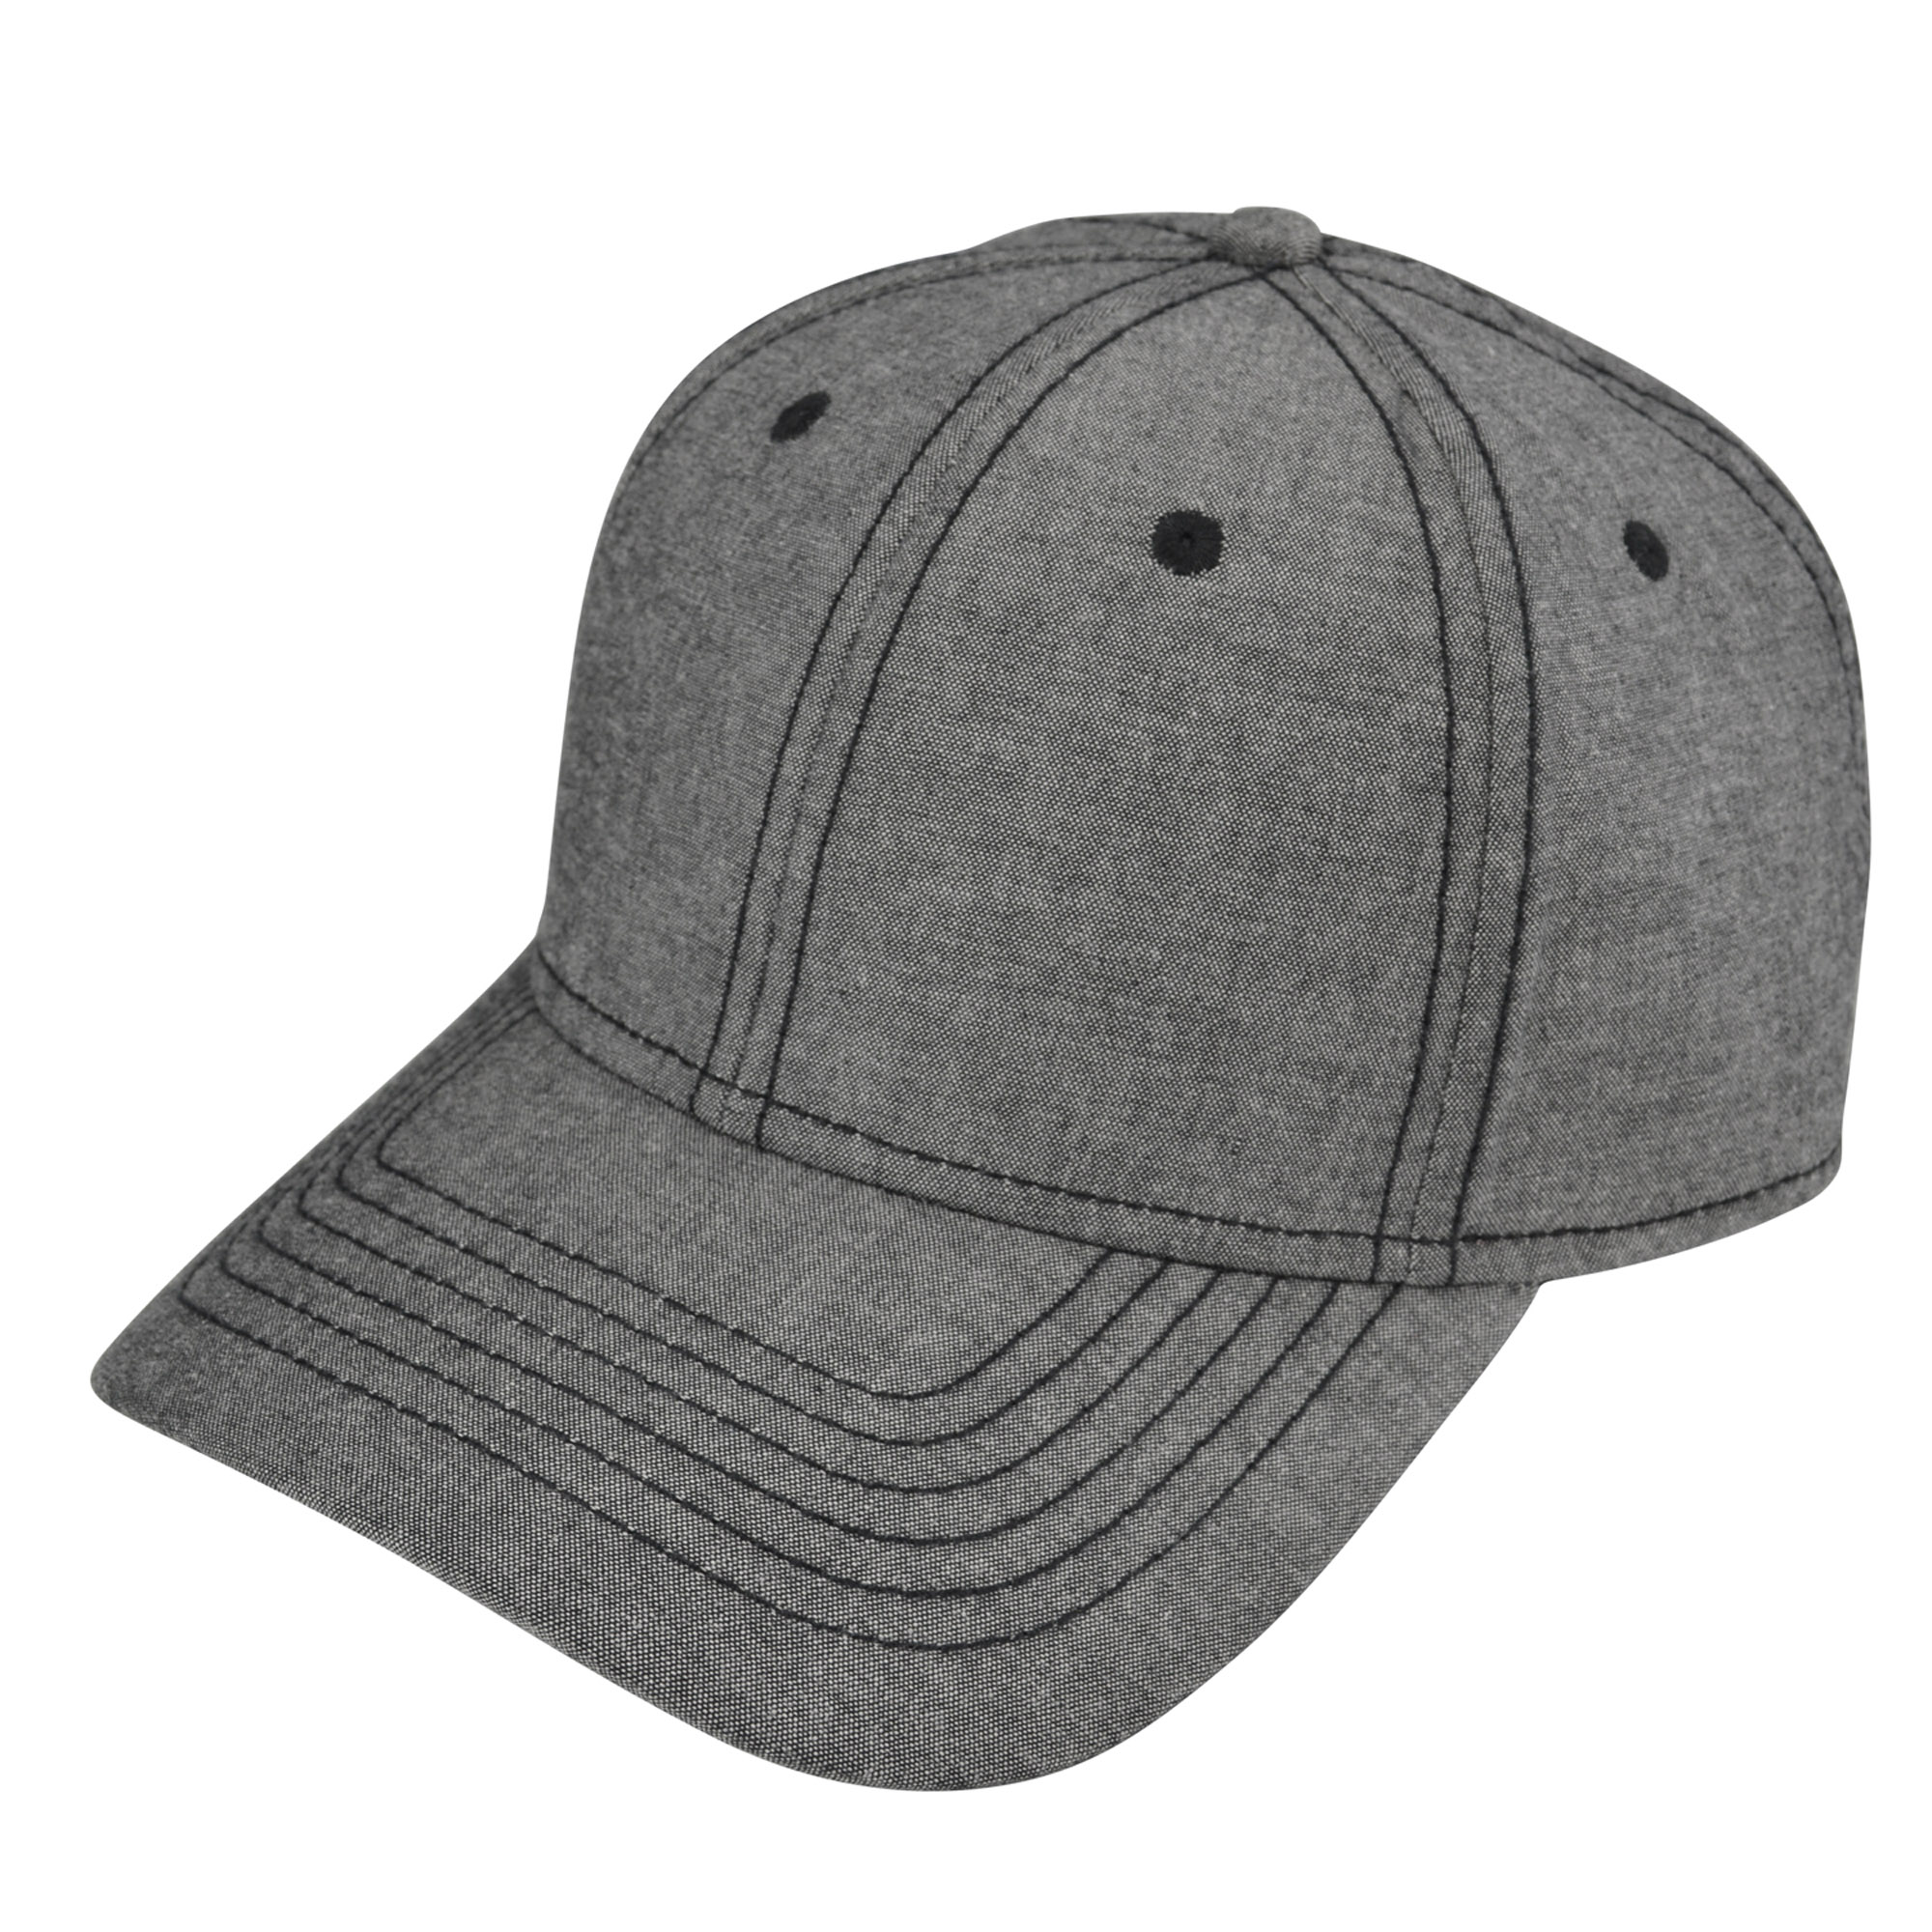 DALIX Premium Chambray Low Crown Cap Curved Bill 6 Panel Hat (Black)